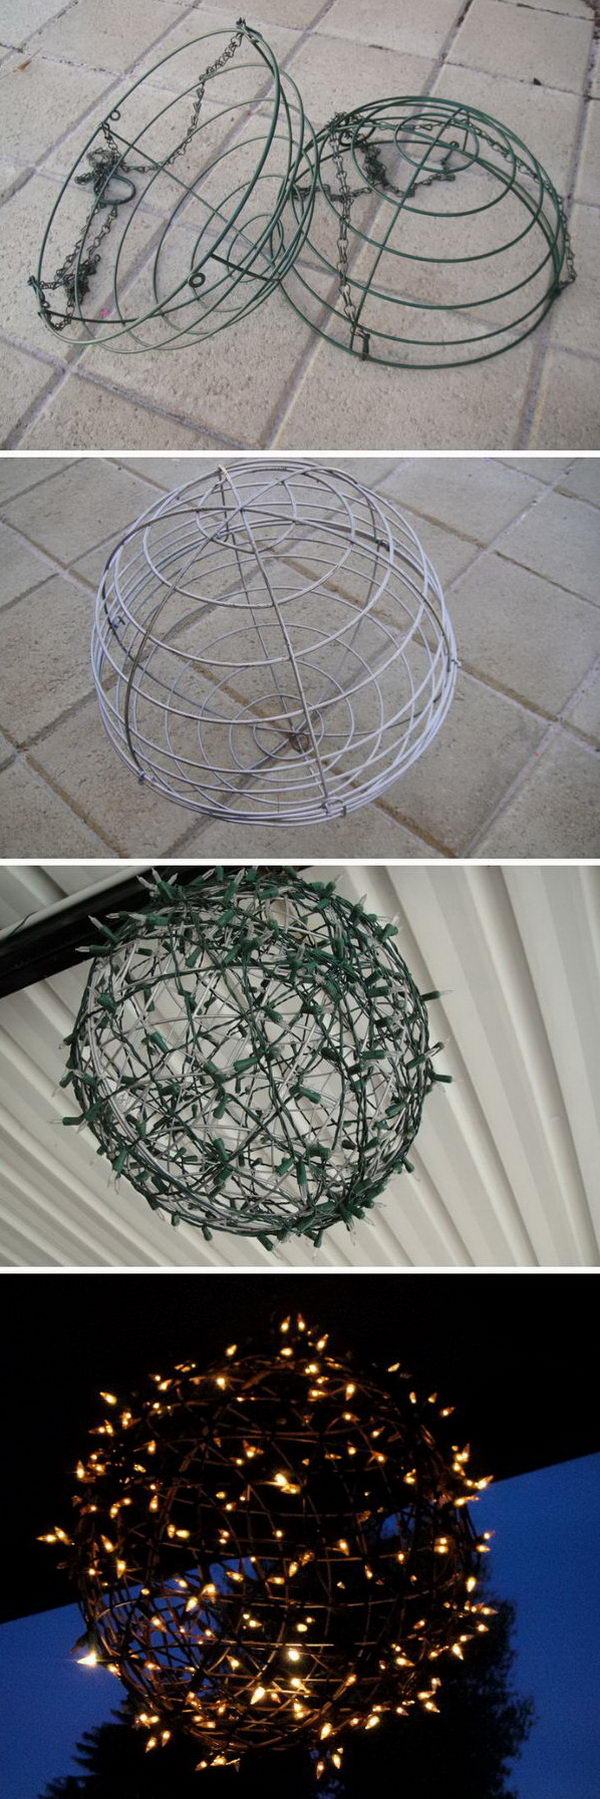 Fairy Light Globe Made Out Of Wire Baskets.